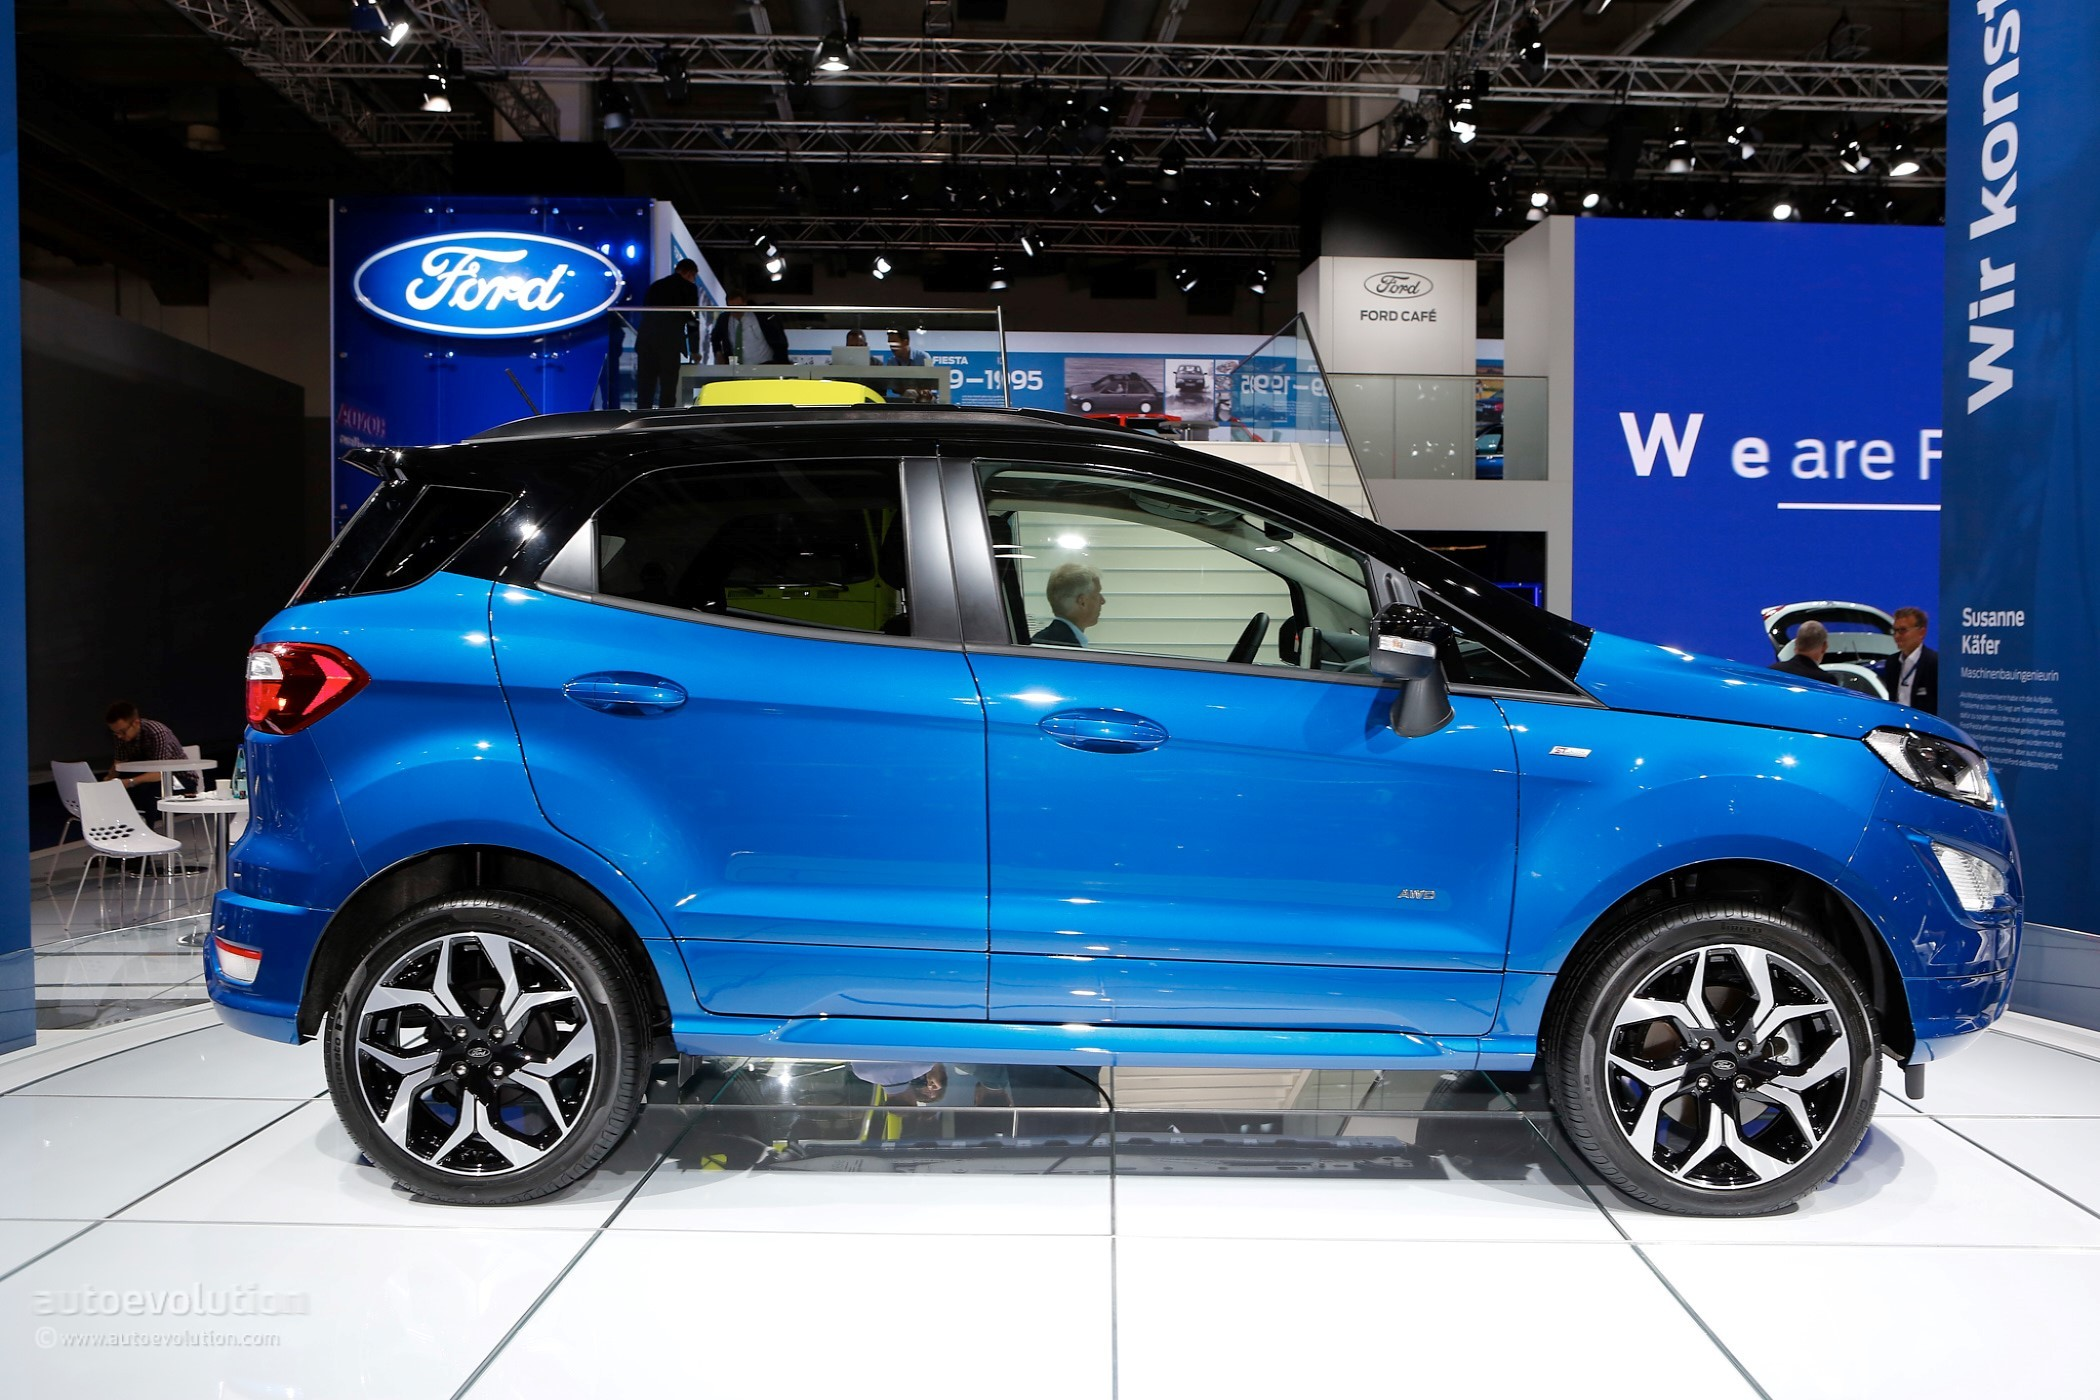 Ford Edge 2013 >> Ford Might Assemble EcoSport in Romania for European Market - autoevolution